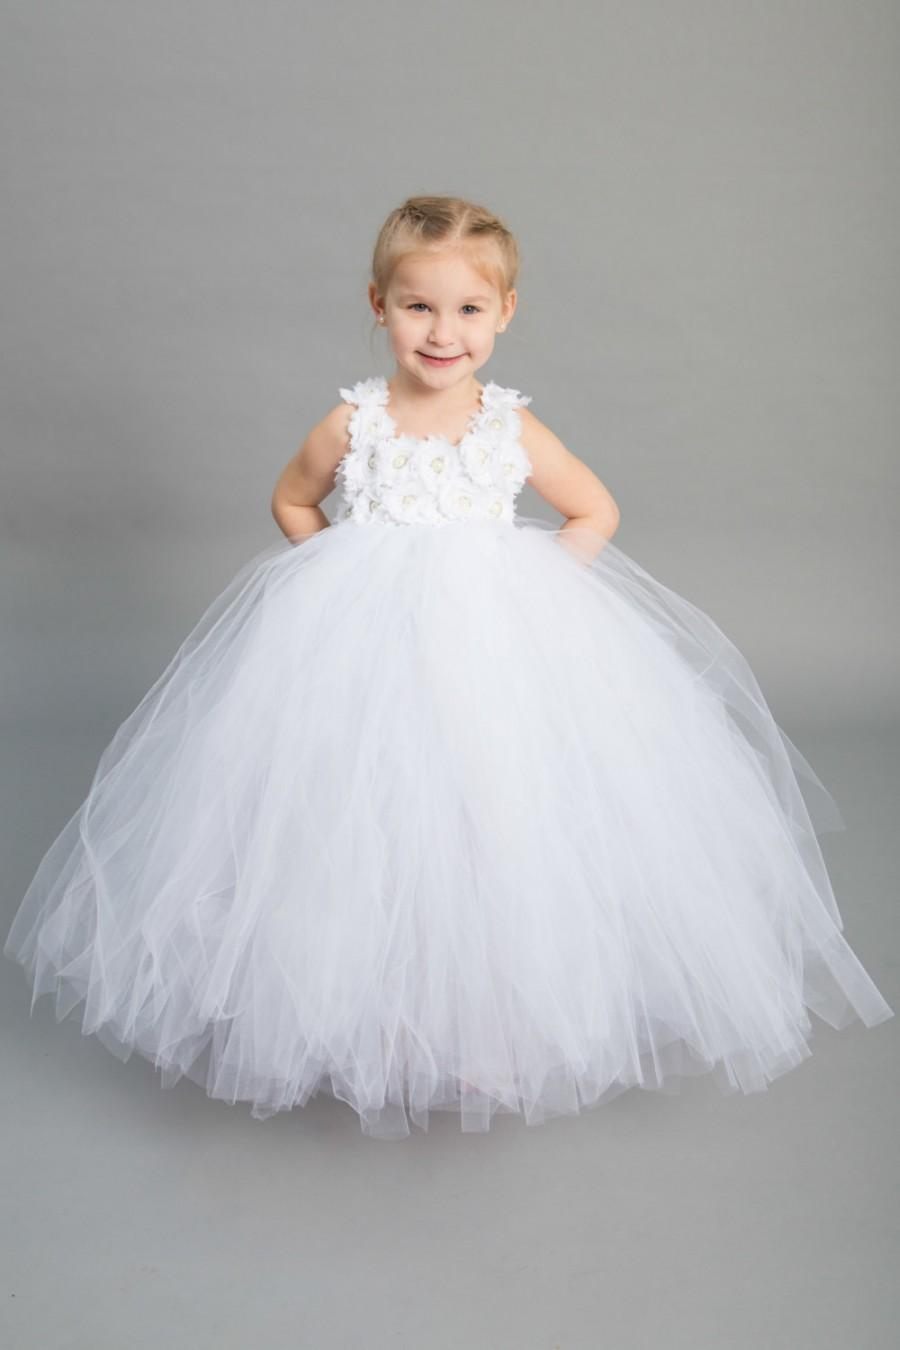 Flower girl dress tulle flower girl dress white dress tulle flower girl dress tulle flower girl dress white dress tulle dress infanttoddler pageant dress princess dress white flower dress mightylinksfo